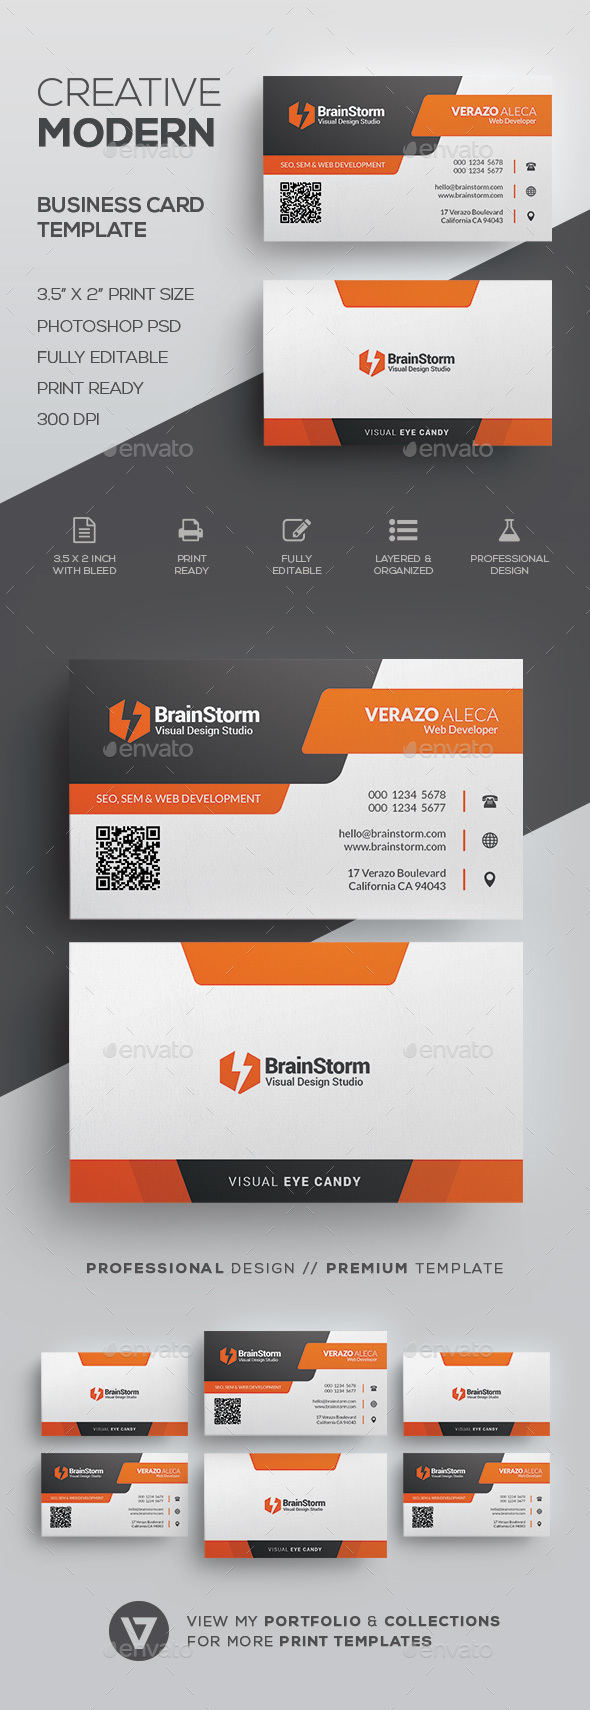 Modern Business Card Template by verazo | GraphicRiver